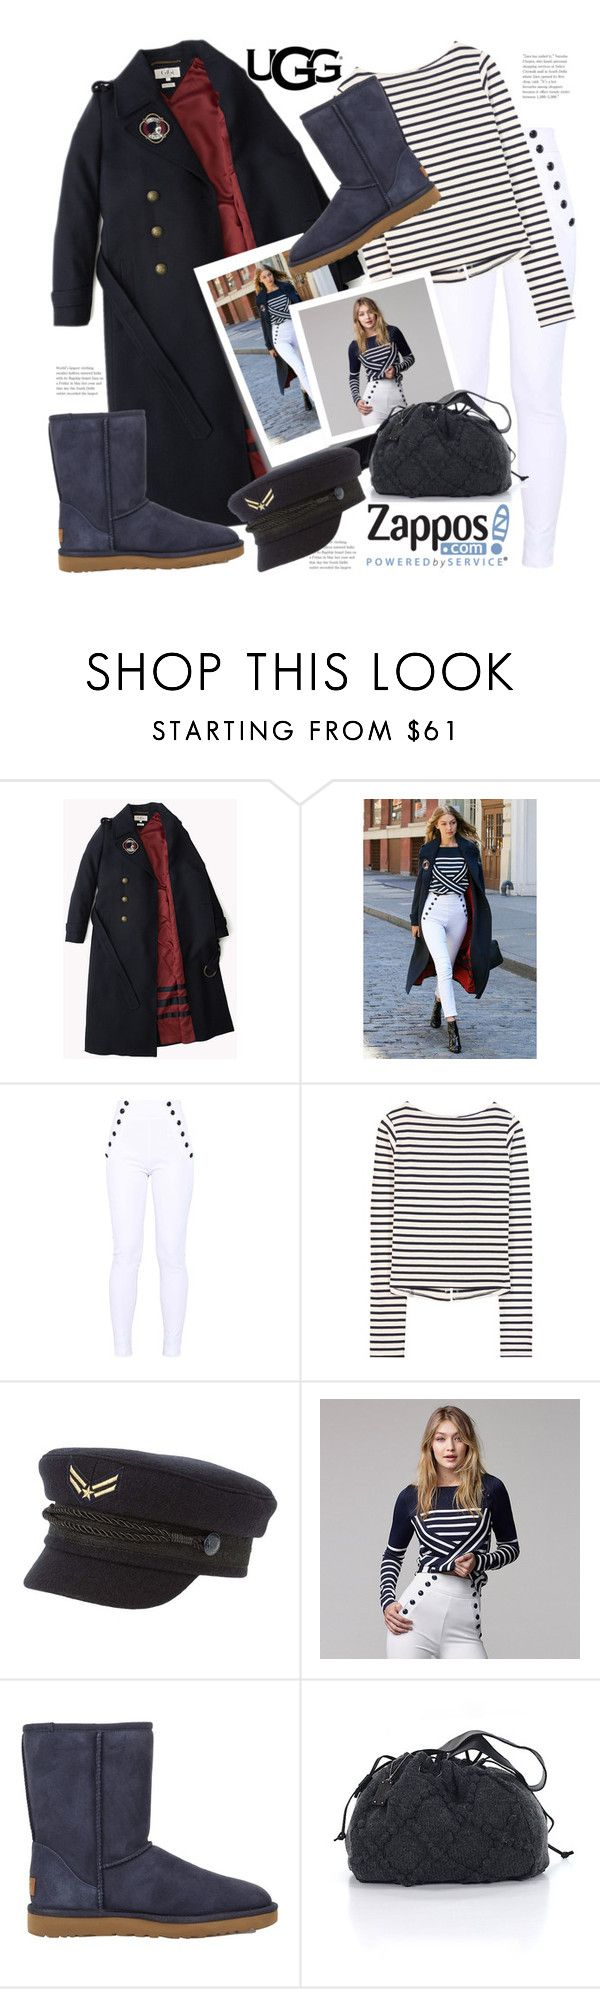 """""""The Icon Perfected:  UGG Classic 11 competition entry"""" by hattie4palmerstone ❤ liked on Polyvore featuring Post-It, Jacquemus, UGG Australia, UGG and ugg"""